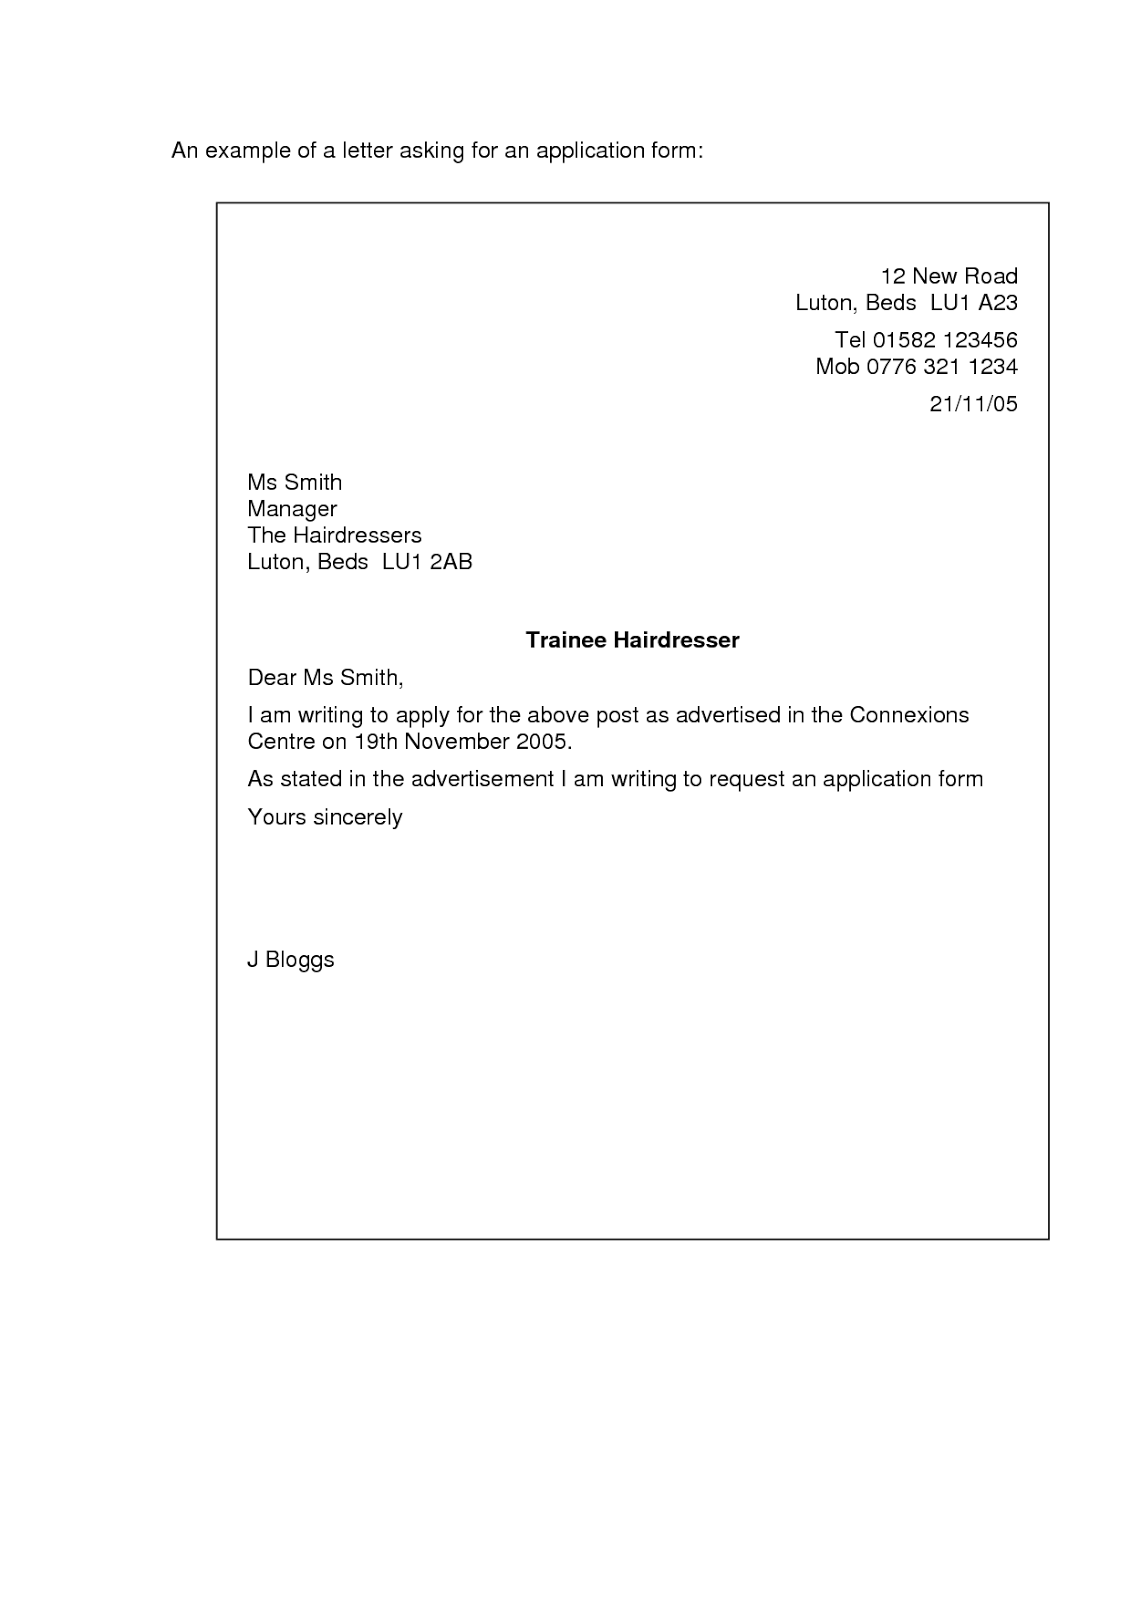 Short Application Cover Letter Job Application Cover Letter Examples  Letter  Pinterest  Cover